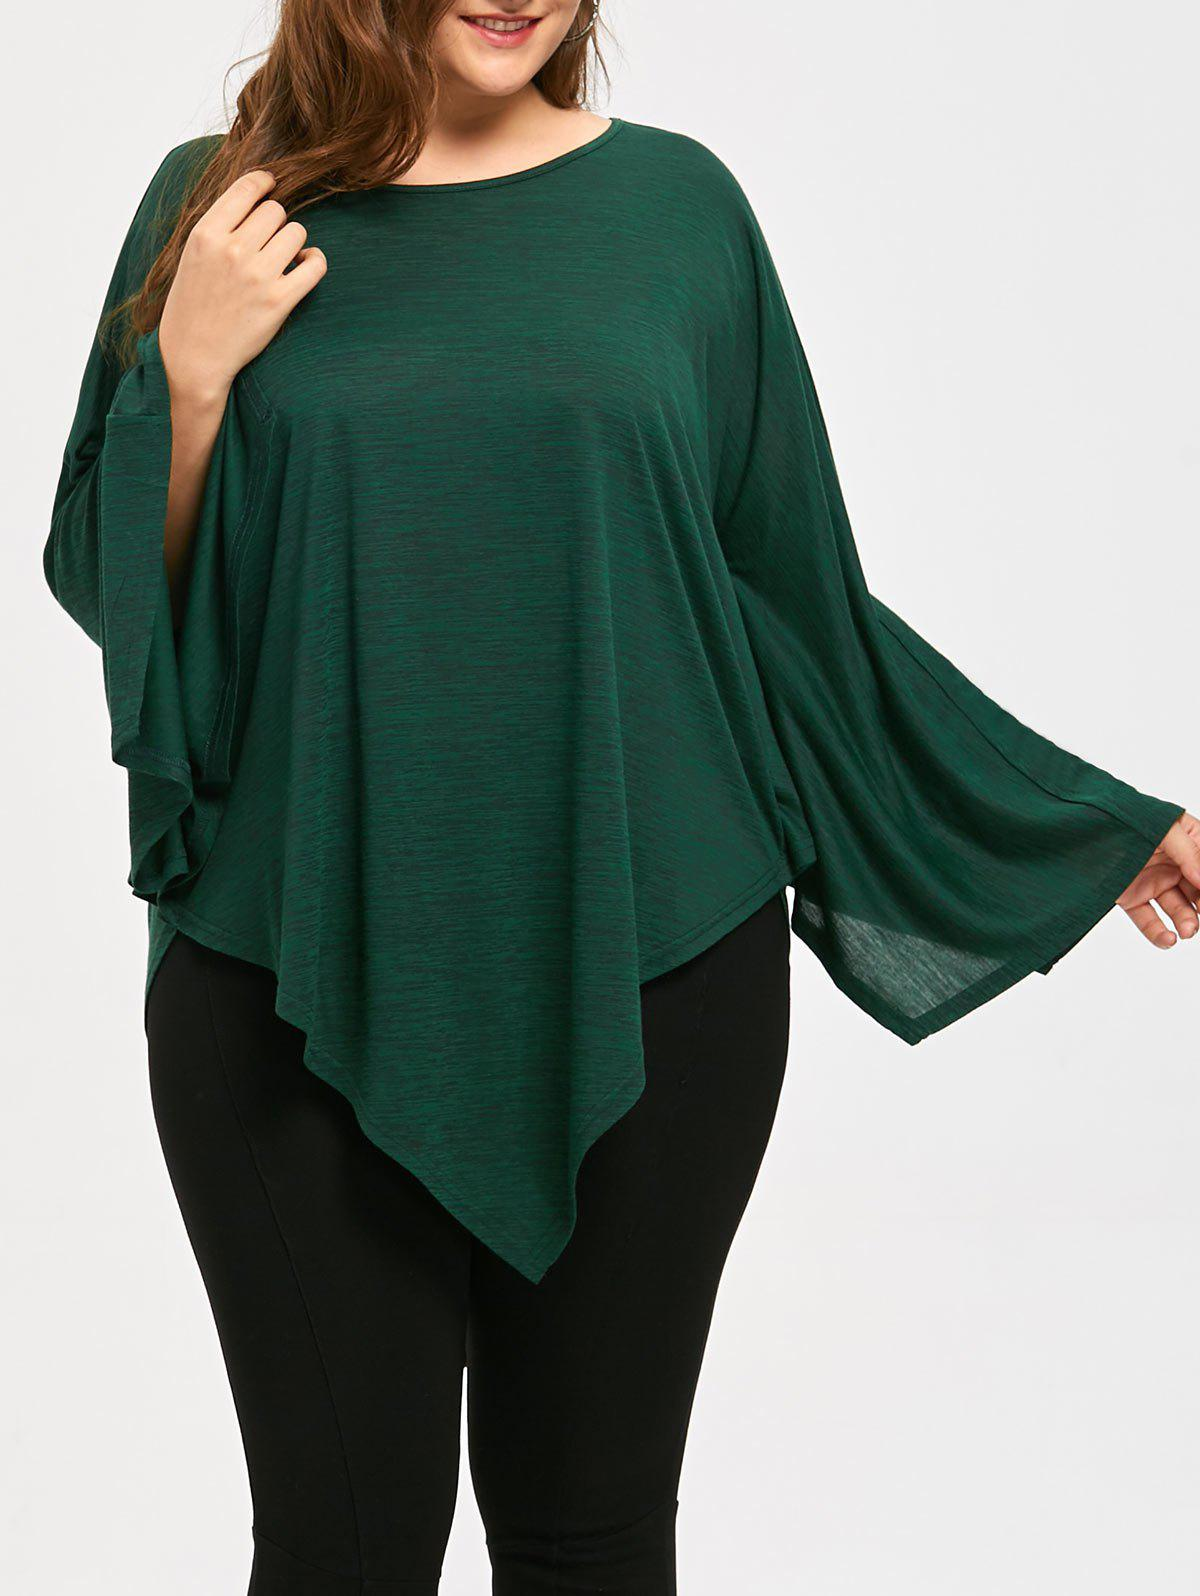 939a9b8253e 2018 Asymmetric Plus Size Long Cape Top In Hunter 5xl